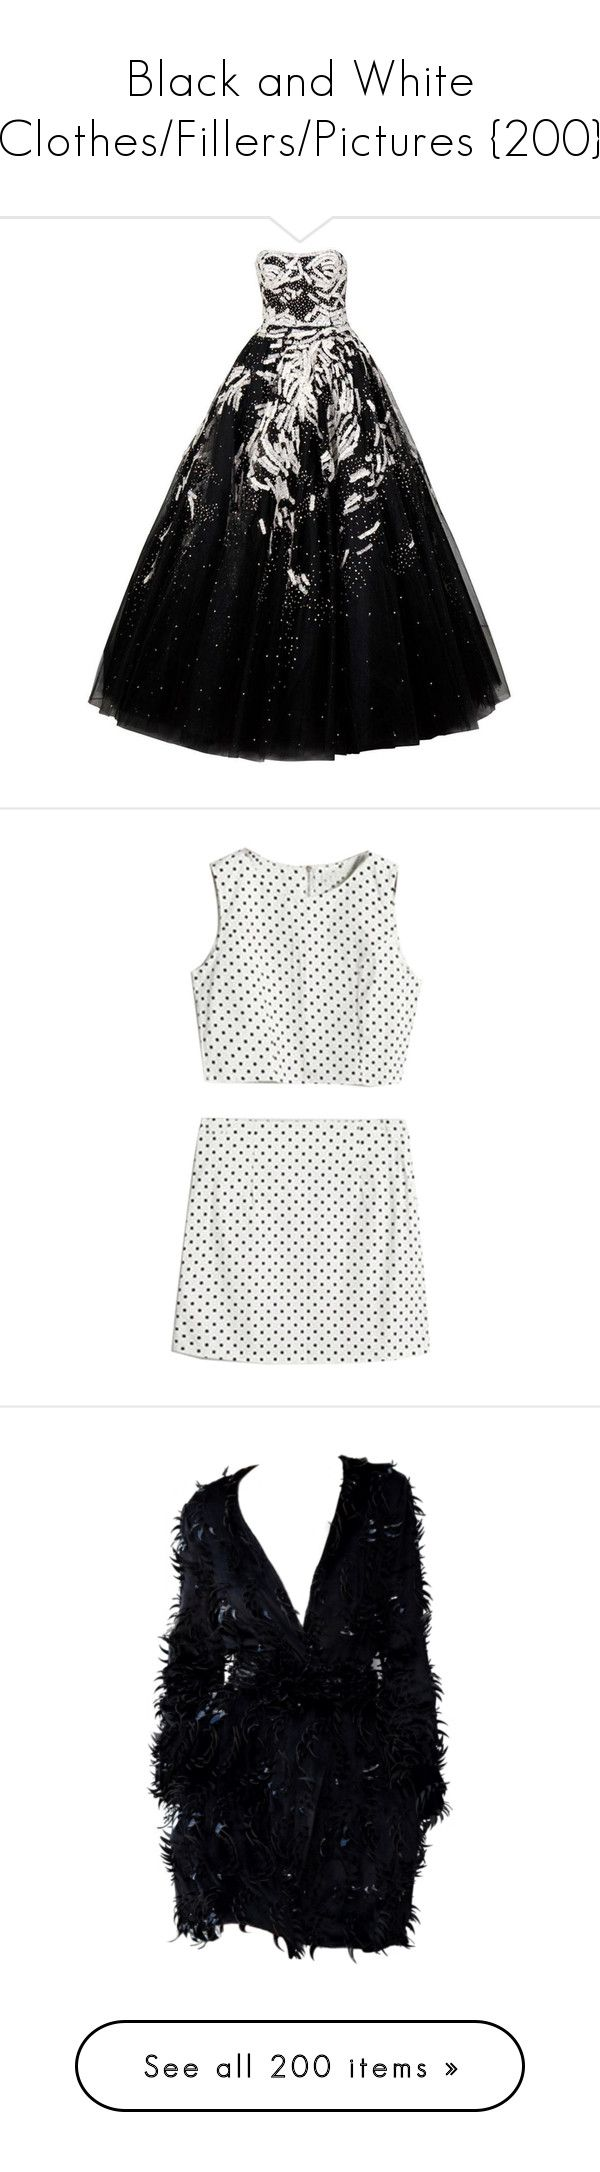 """Black and White Clothes/Fillers/Pictures {200}"" by madslolo ❤ liked on Polyvore featuring dresses, gowns, vestidos, long dresses, women, sequin evening gowns, strapless sequin dress, sequin dress, sequin ball gown and sequin evening dresses"